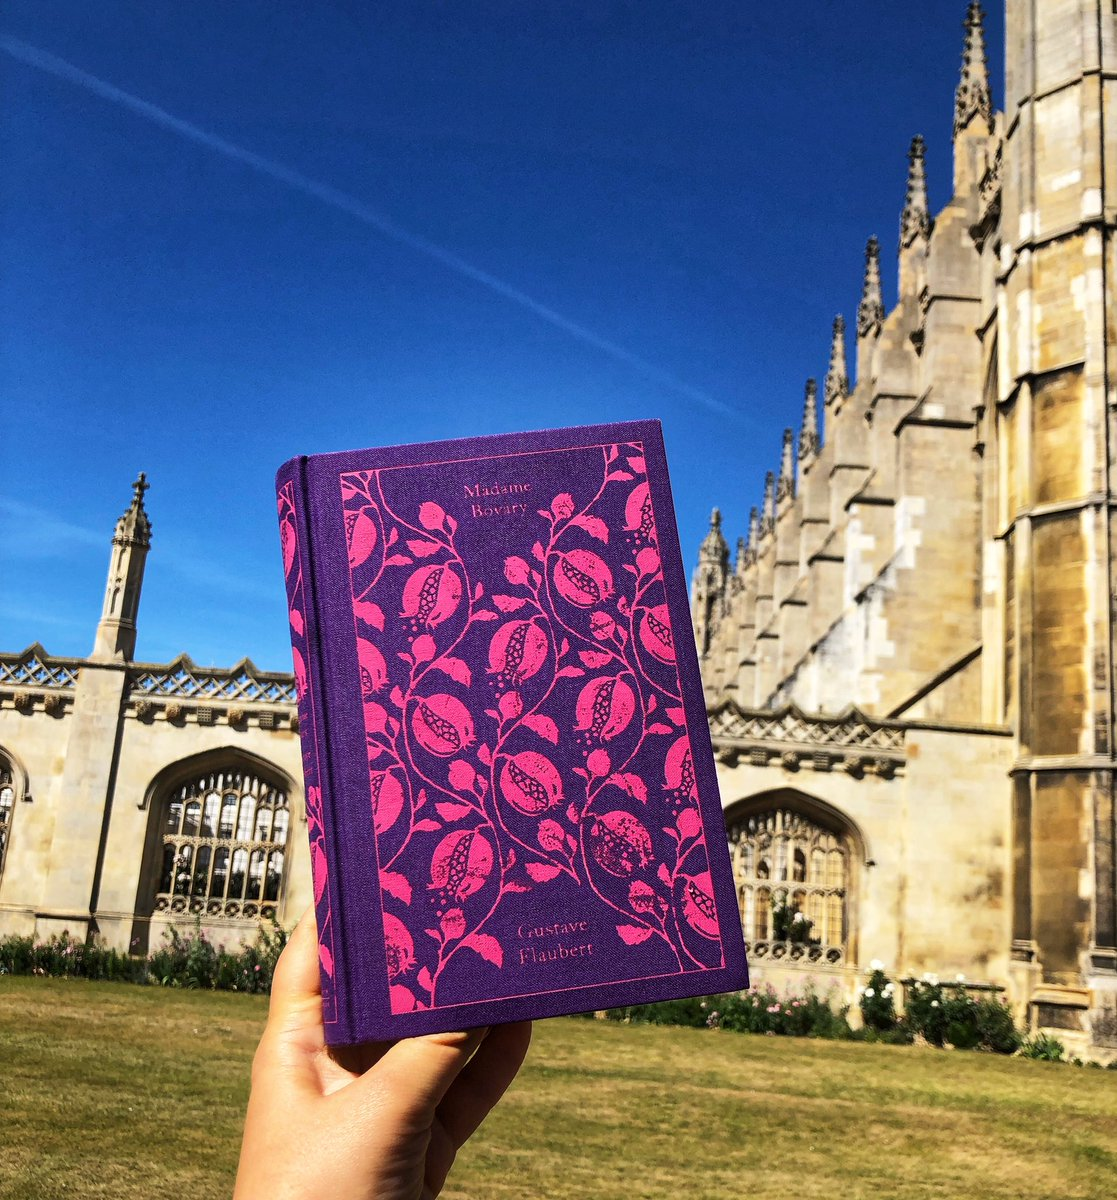 Emma Bovary and I had a stroll. Who read Madame Bovary? Imagine she lived in another century... #book #bookblogger #classics pic.twitter.com/5DppGJ2AT7